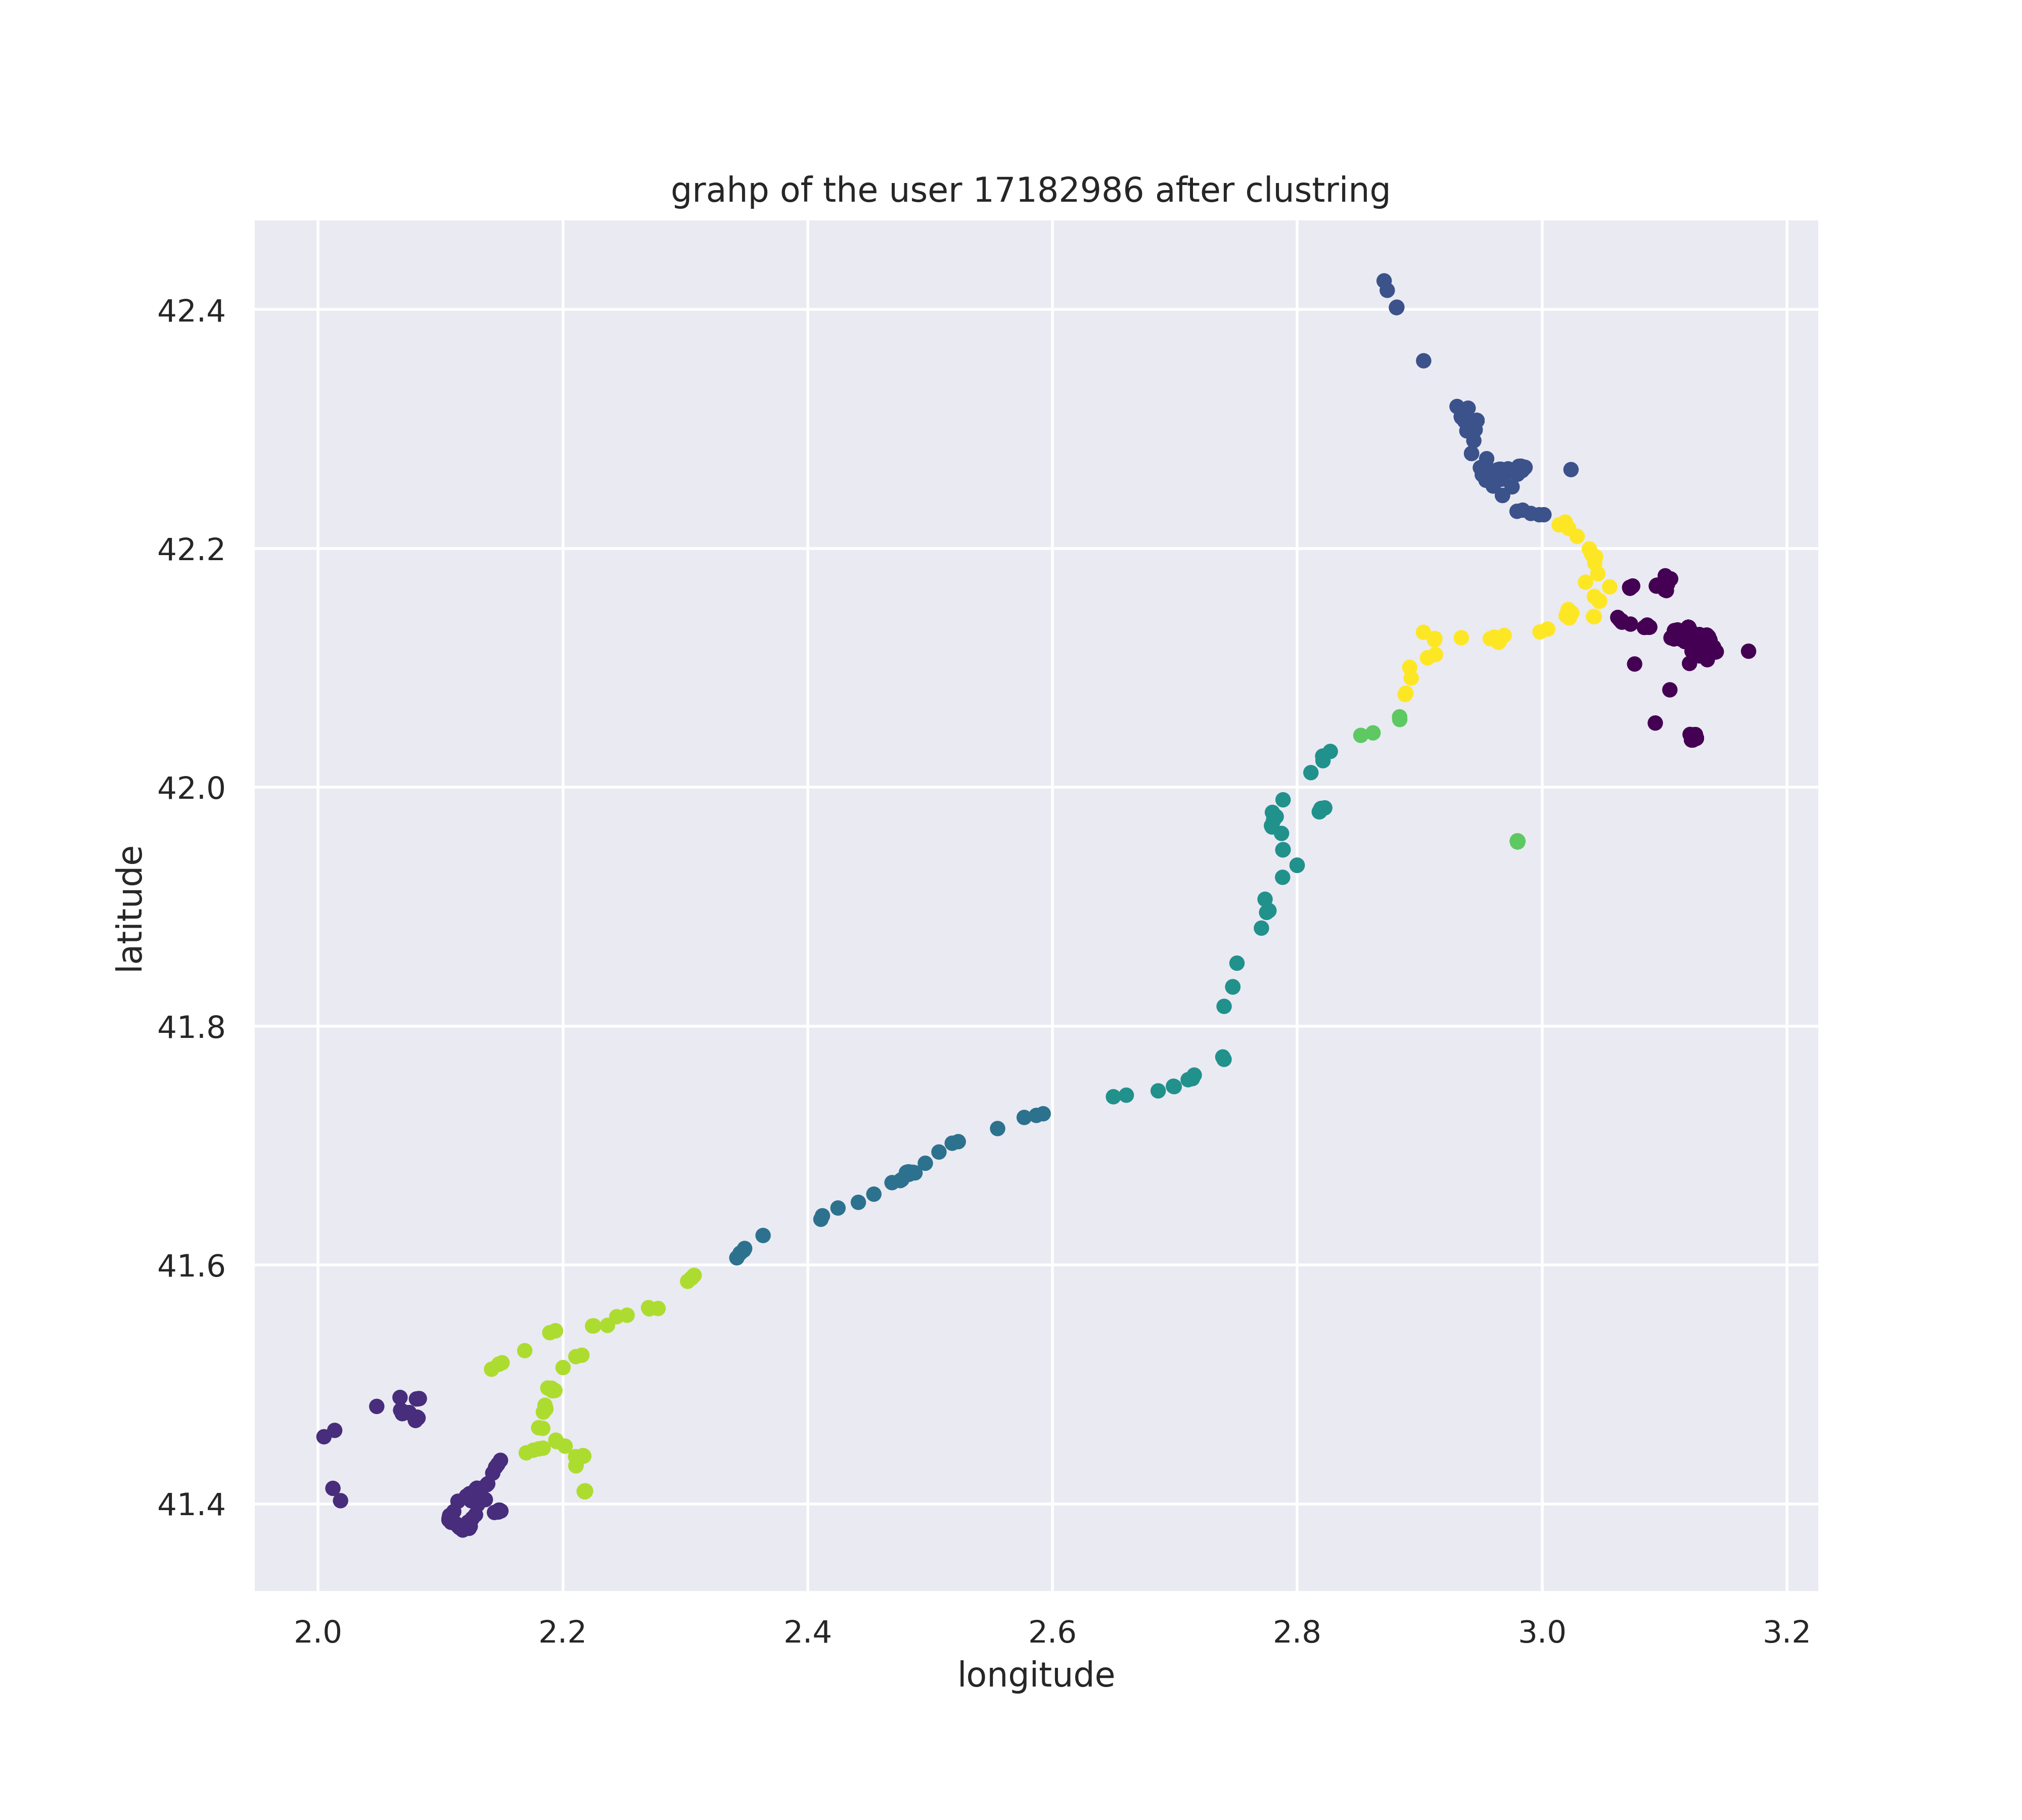 Figure 5. Graphic representation of a user GPS coordinations after GMM clustering.